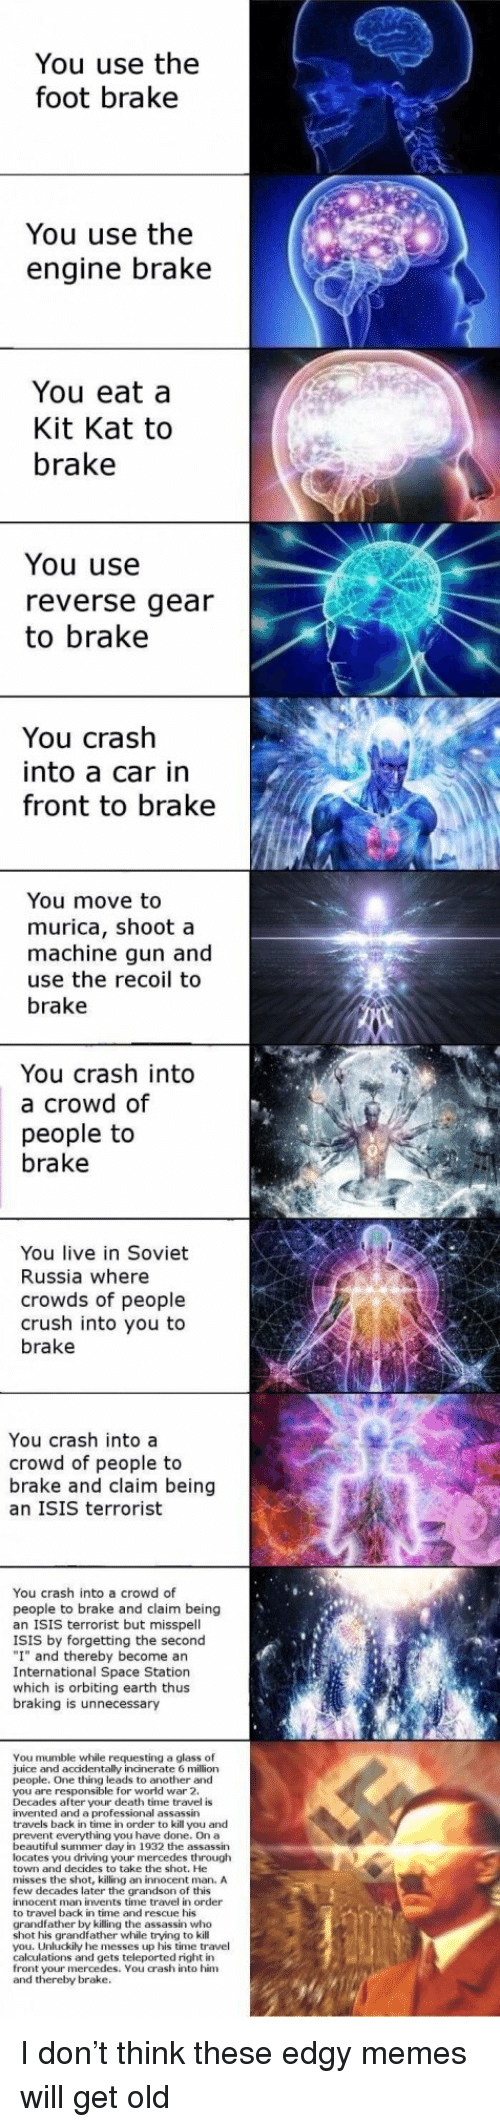 """Beautiful, Crush, and Driving: You use the  foot brake  You use the  engine brake  You eat a  Kit Kat to  brake  You use  reverse gear  to brake  You crash  into a car in  front to brake  You move to  murica, shoot a  machine gun and  use the recoil to  brake  You crash into  a crowd of  people to  brake  You live in Soviet  Russia where  crowds of people  crush into you to  brake  You crash into a  crowd of people to  brake and claim being  an ISIS terrorist  You crash into a crowd of  people to brake and claim being  an ISIS terrorist but misspell  ISIS by forgetting the second  """"I"""" and thereby become an  International Space Station  which is orbiting earth thus  braking is unnecessary  You mumble while requesting a glass of  juice and accidentally incinerate 6 million  people. One thing leads to another and  you are responsible for world war 2  Decades after your death time travel is  invented and a professioalassassin  travels back in time in order to kill you and  prevent everything you have done. On a  beautiful summer day in 1932 the assassin  locates you driving your mercedes through  town and decides to take the shot. He  misses the shot, killing an innocent man, A  few decades later the grandson of this  innocent man invents time travel in order  to travel back in time and rescue his  grandfather by killing the assassin who  shot his grandfather while trying to kill  you. Unluckily he messes up his time travel  calculations and gets teleported right in  front your mercedes. You crash into him  and thereby brake. <p>I don't think these edgy memes will get old</p>"""